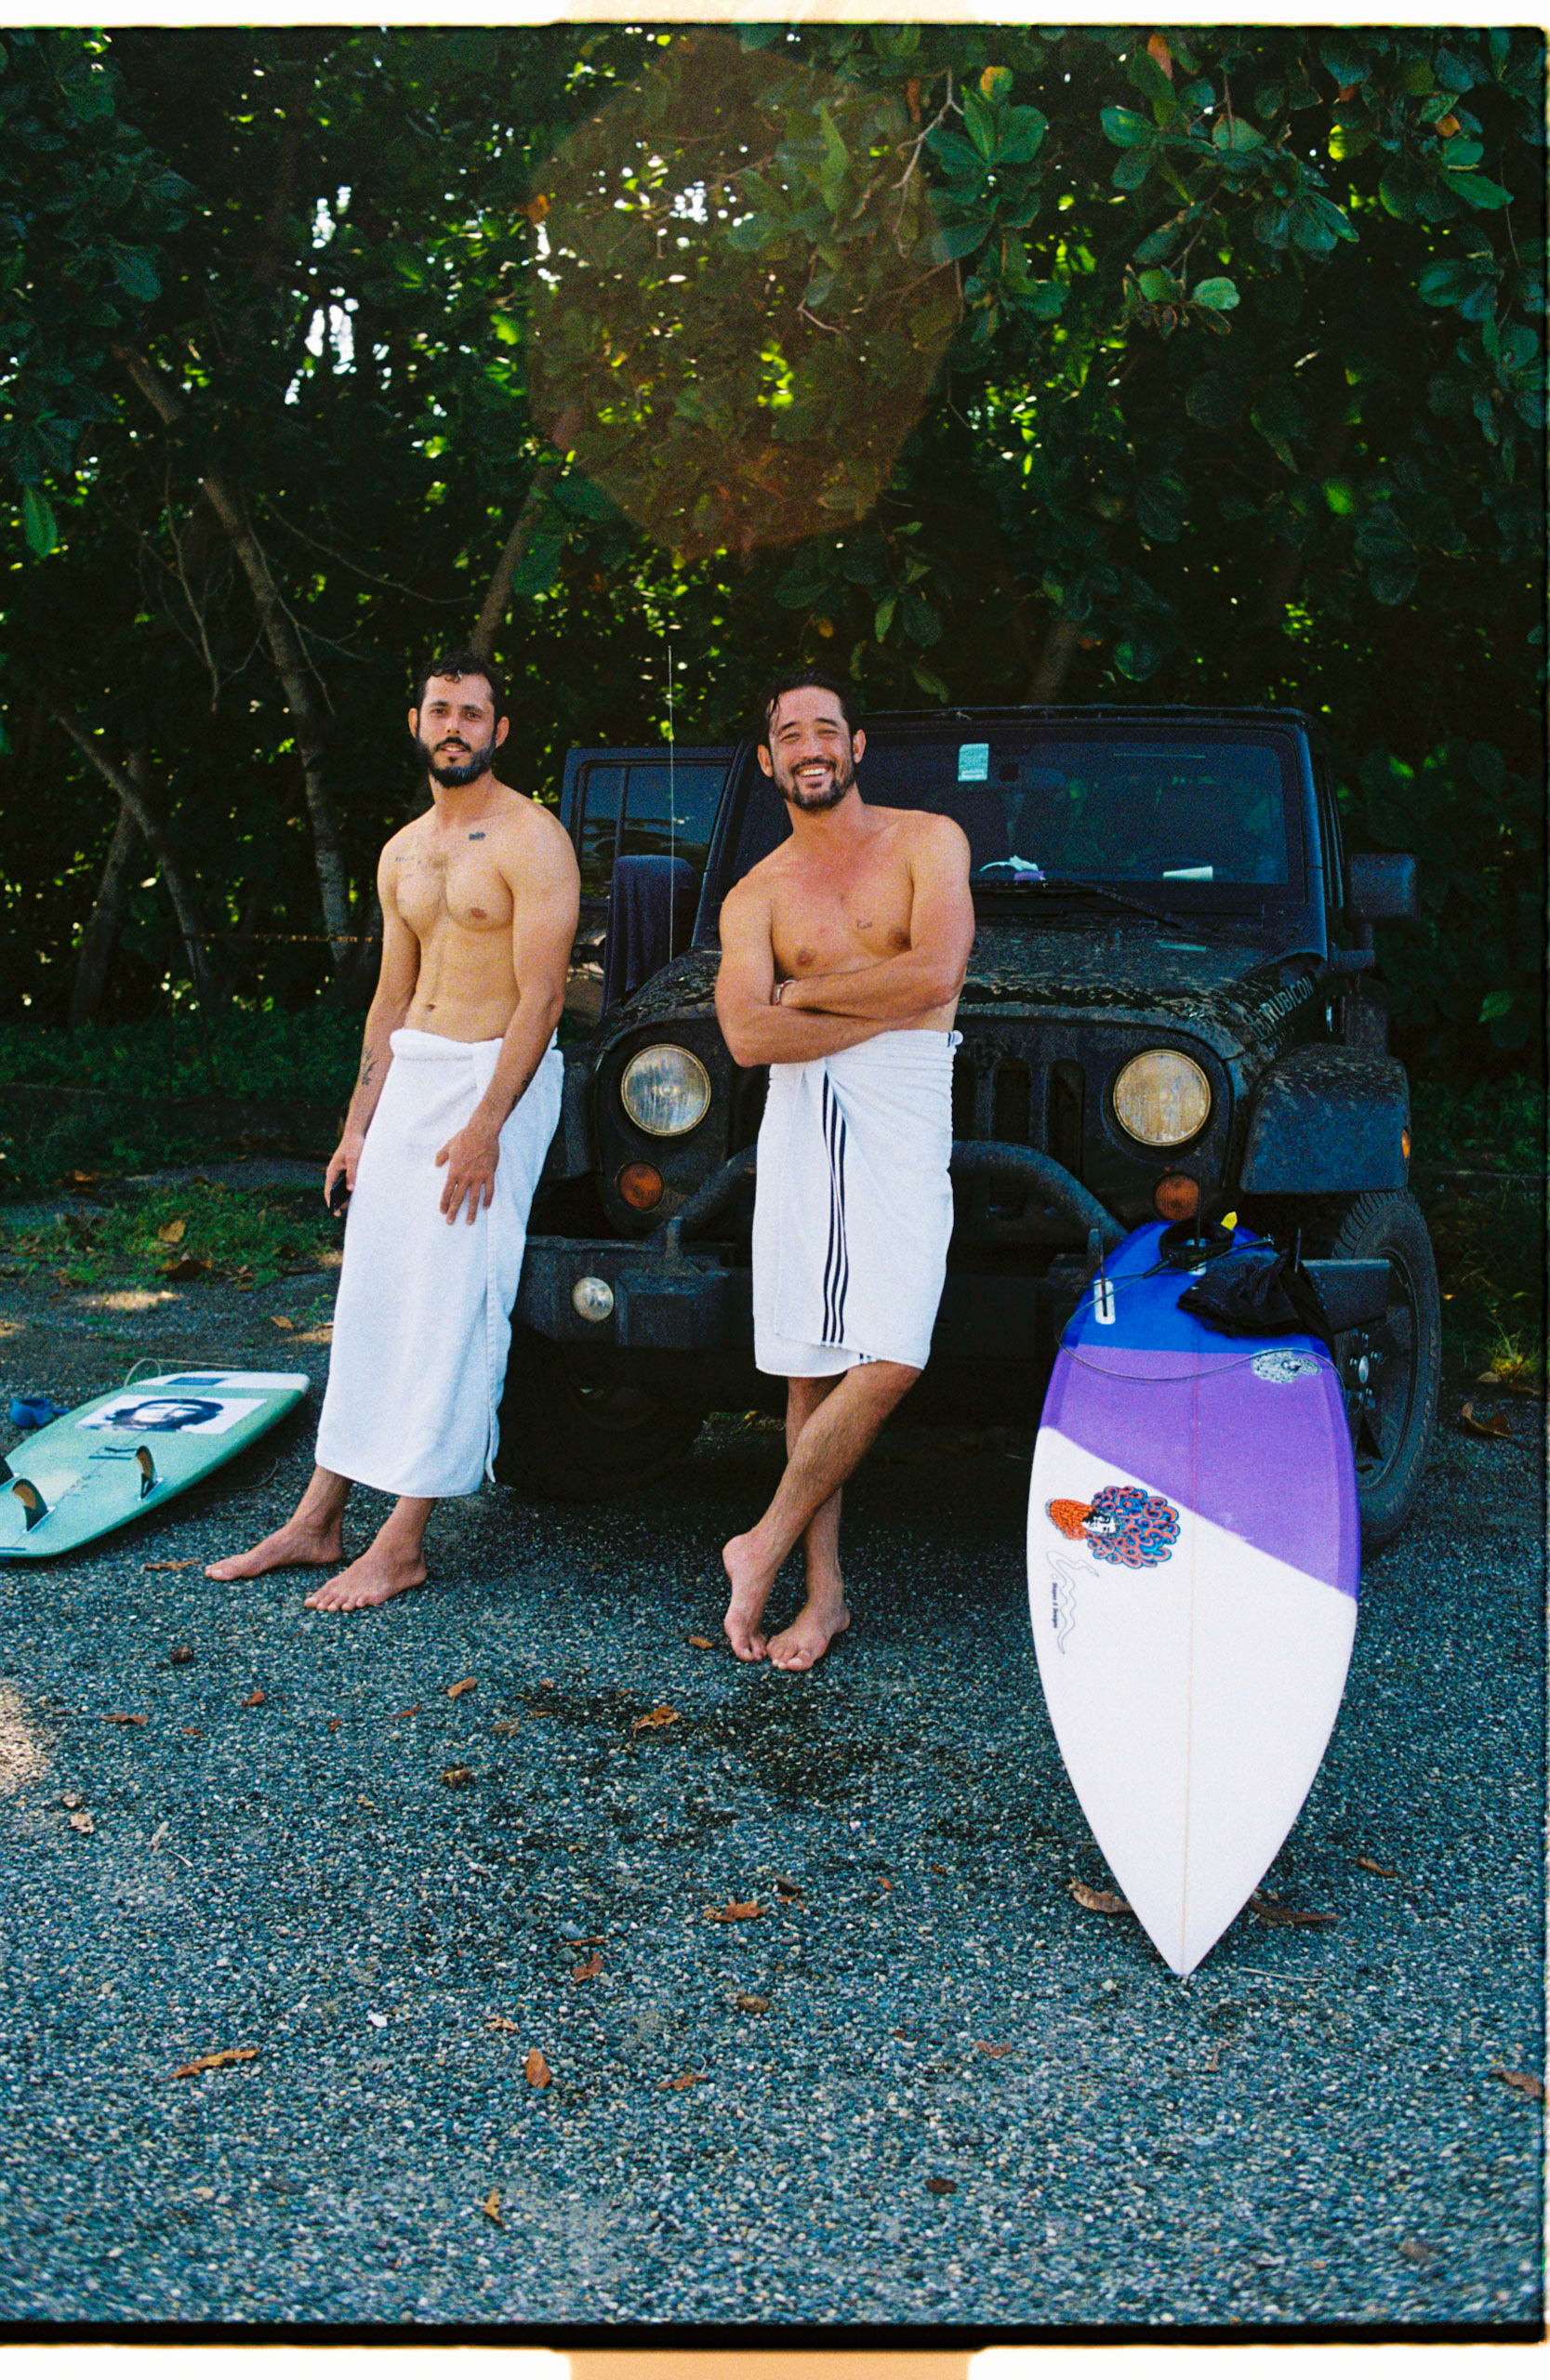 Ari Taymor (left) and Shane Won Murphy (right) after surfing in Mexico.